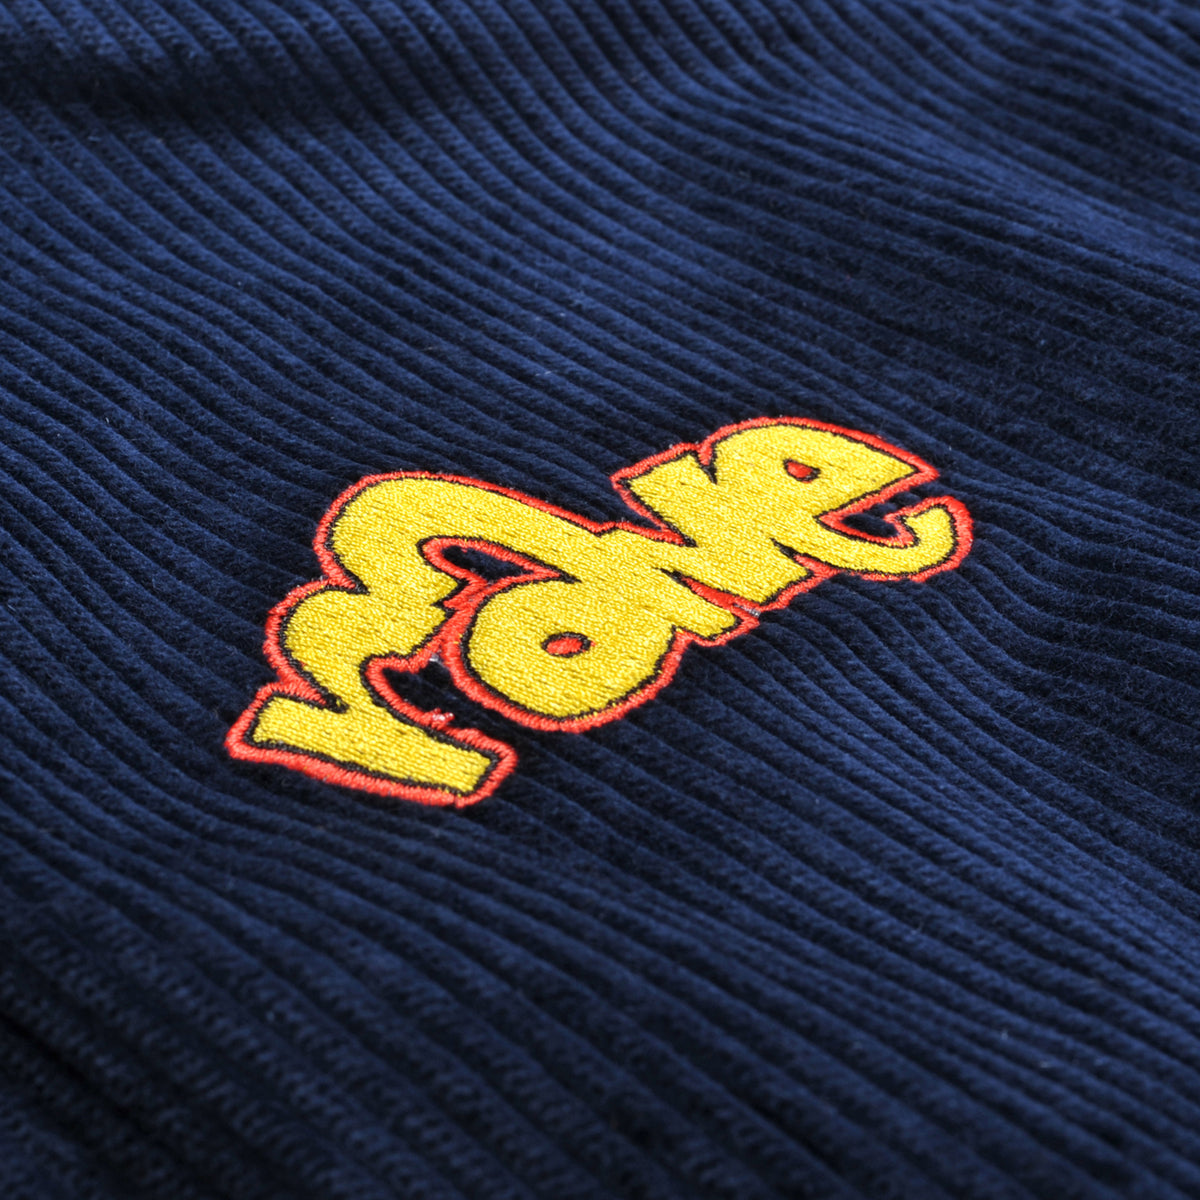 SPIKE cord reversible jacket navy - RAVE skateboards